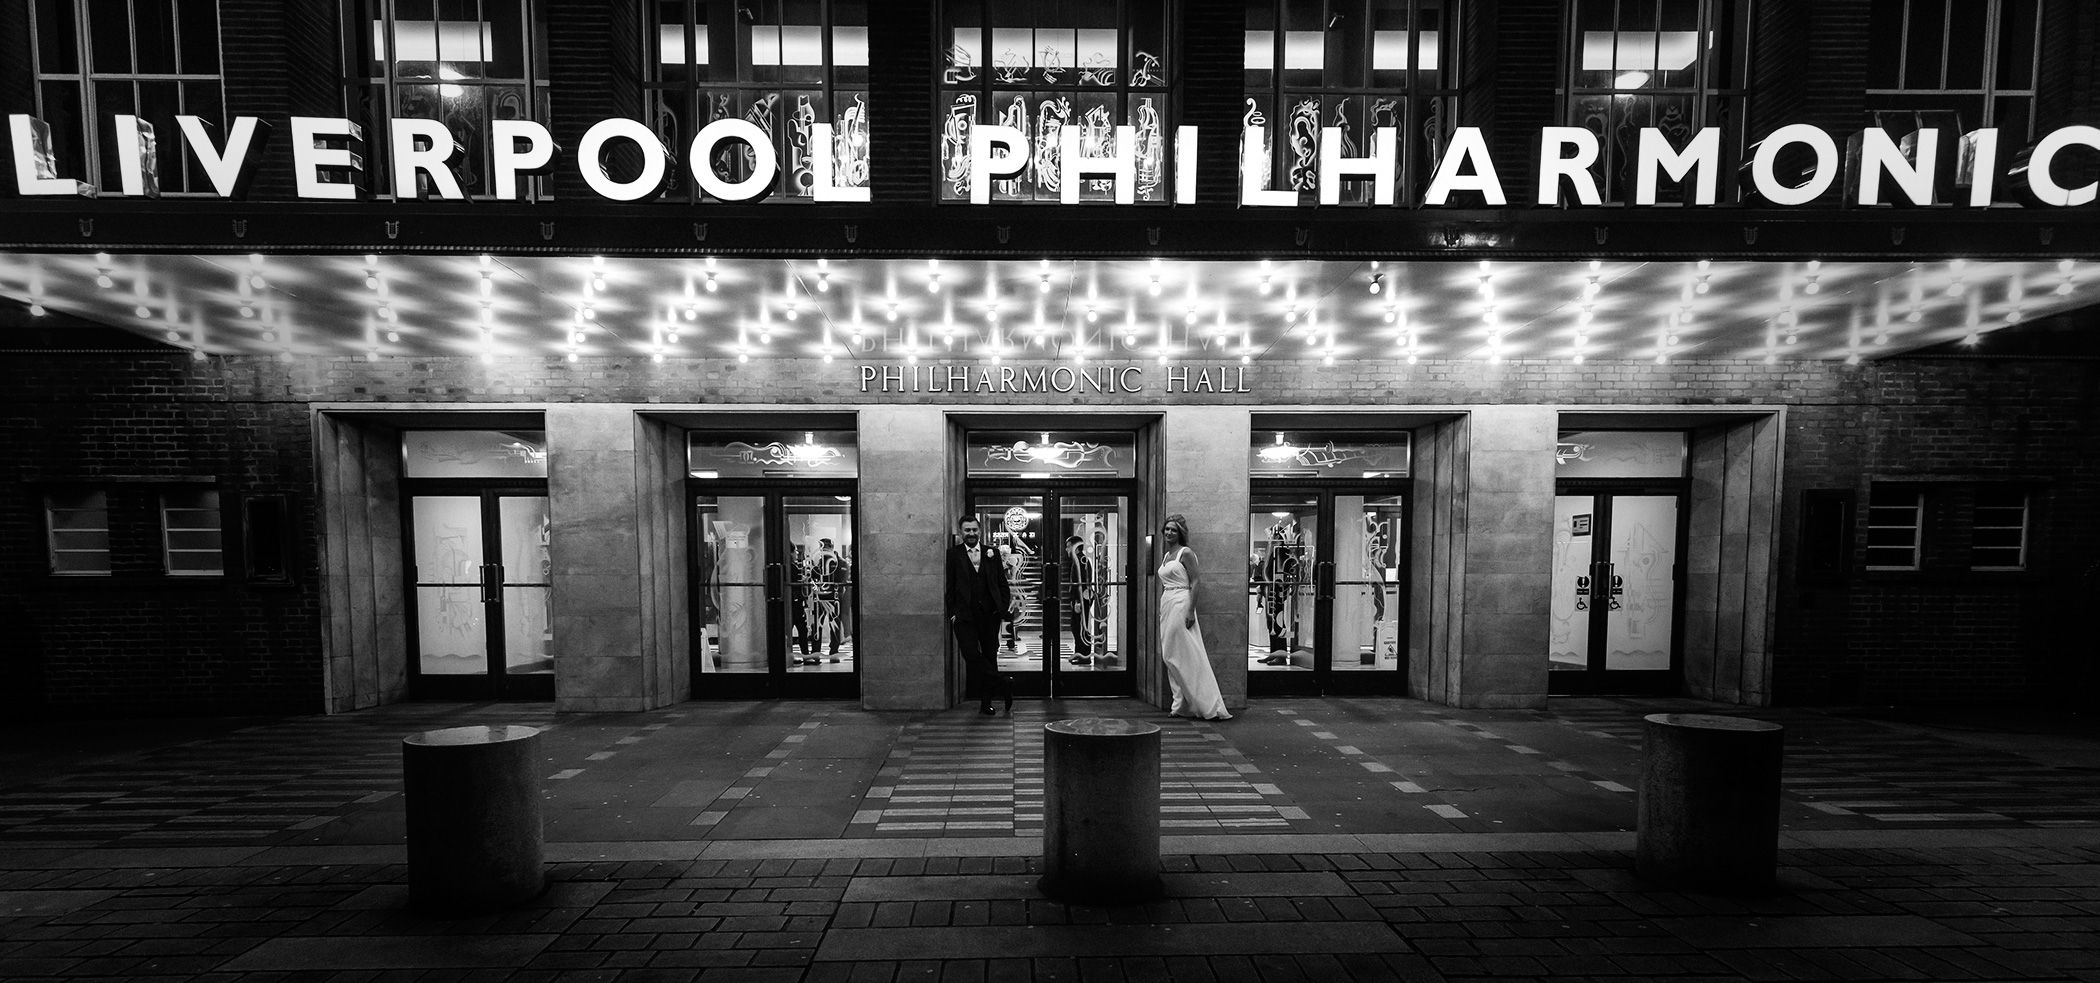 the liverpool Philharmonic